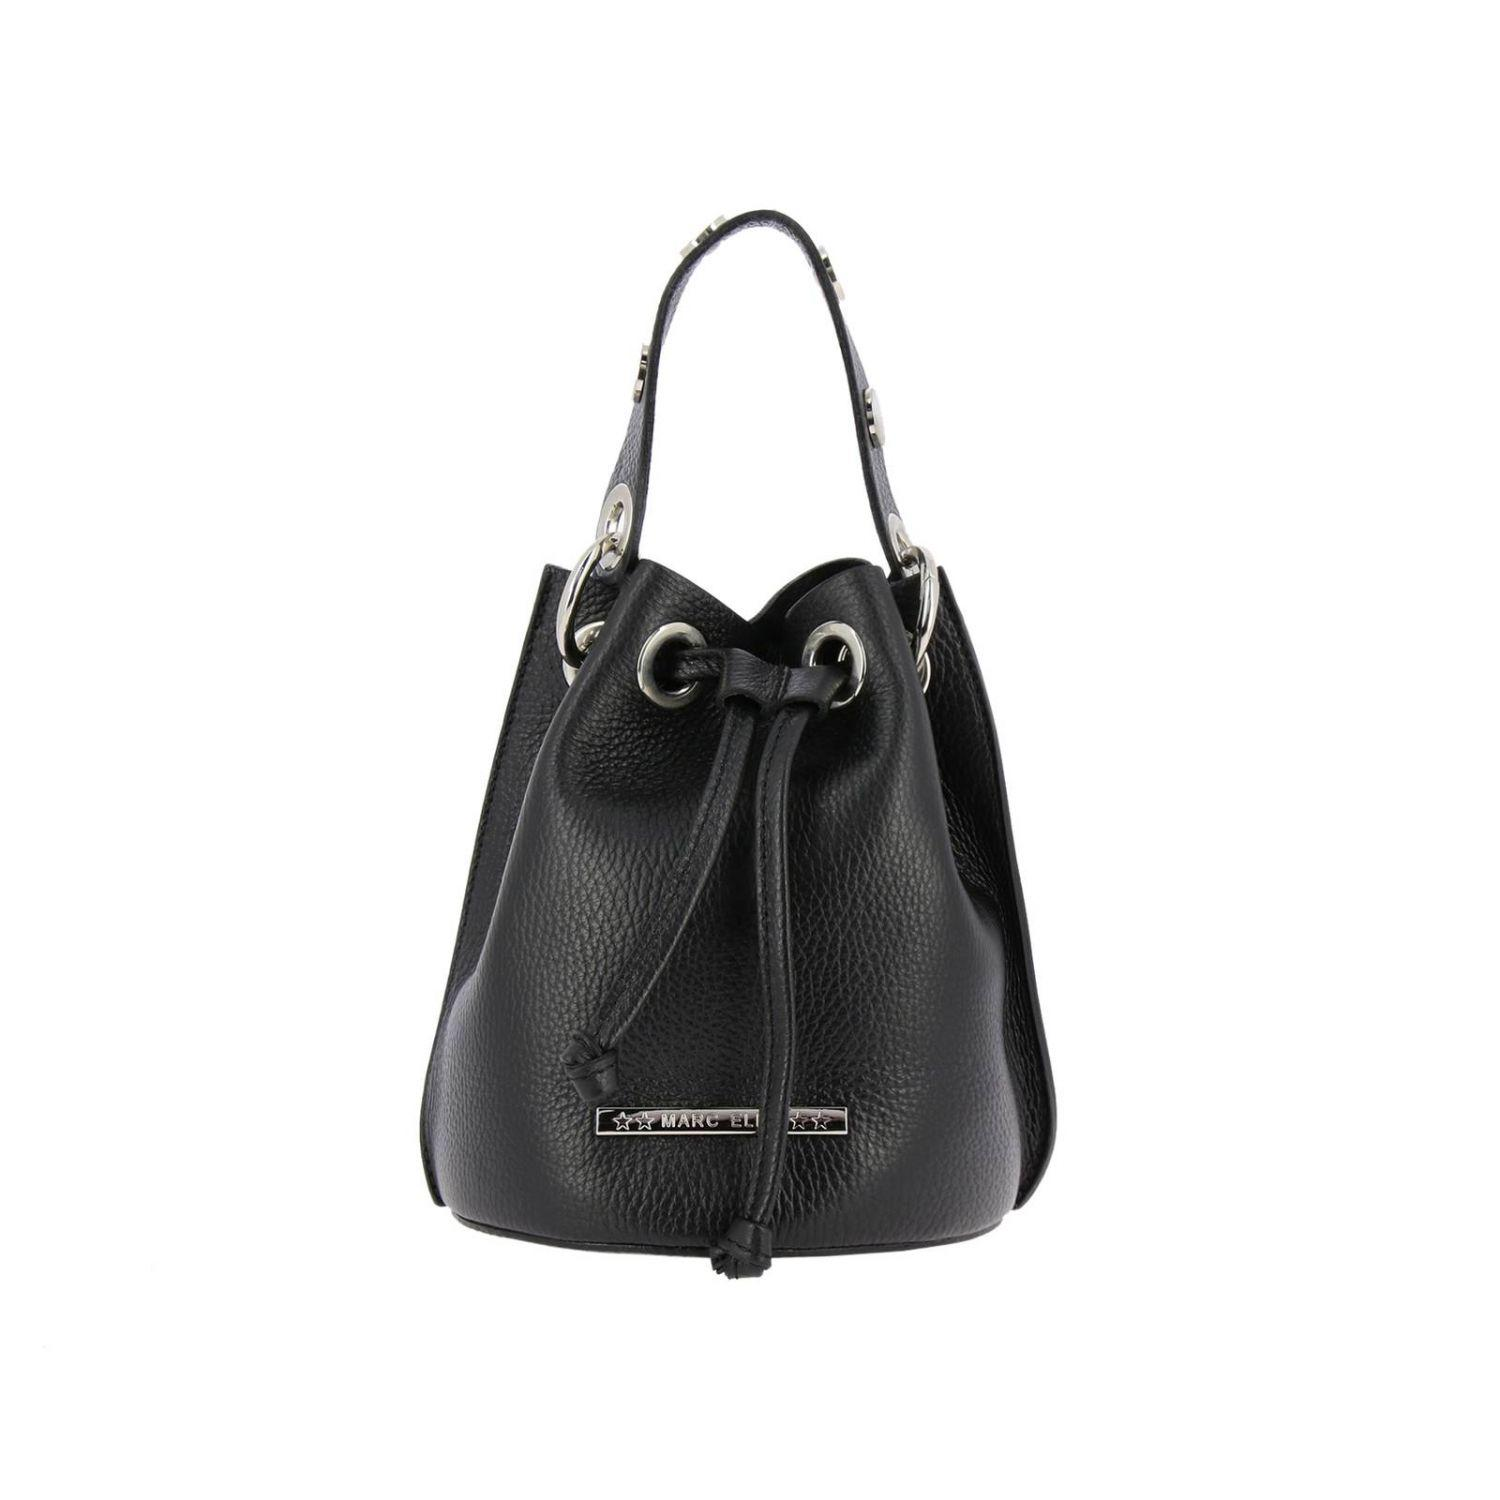 d07ea4972889 Lyst - Marc Ellis Mini Bag Shoulder Bag Women in Black